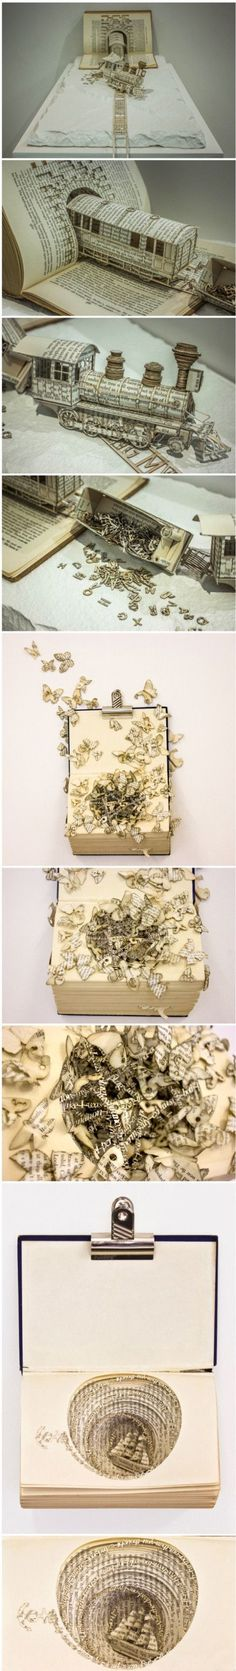 amazing book sculpture: